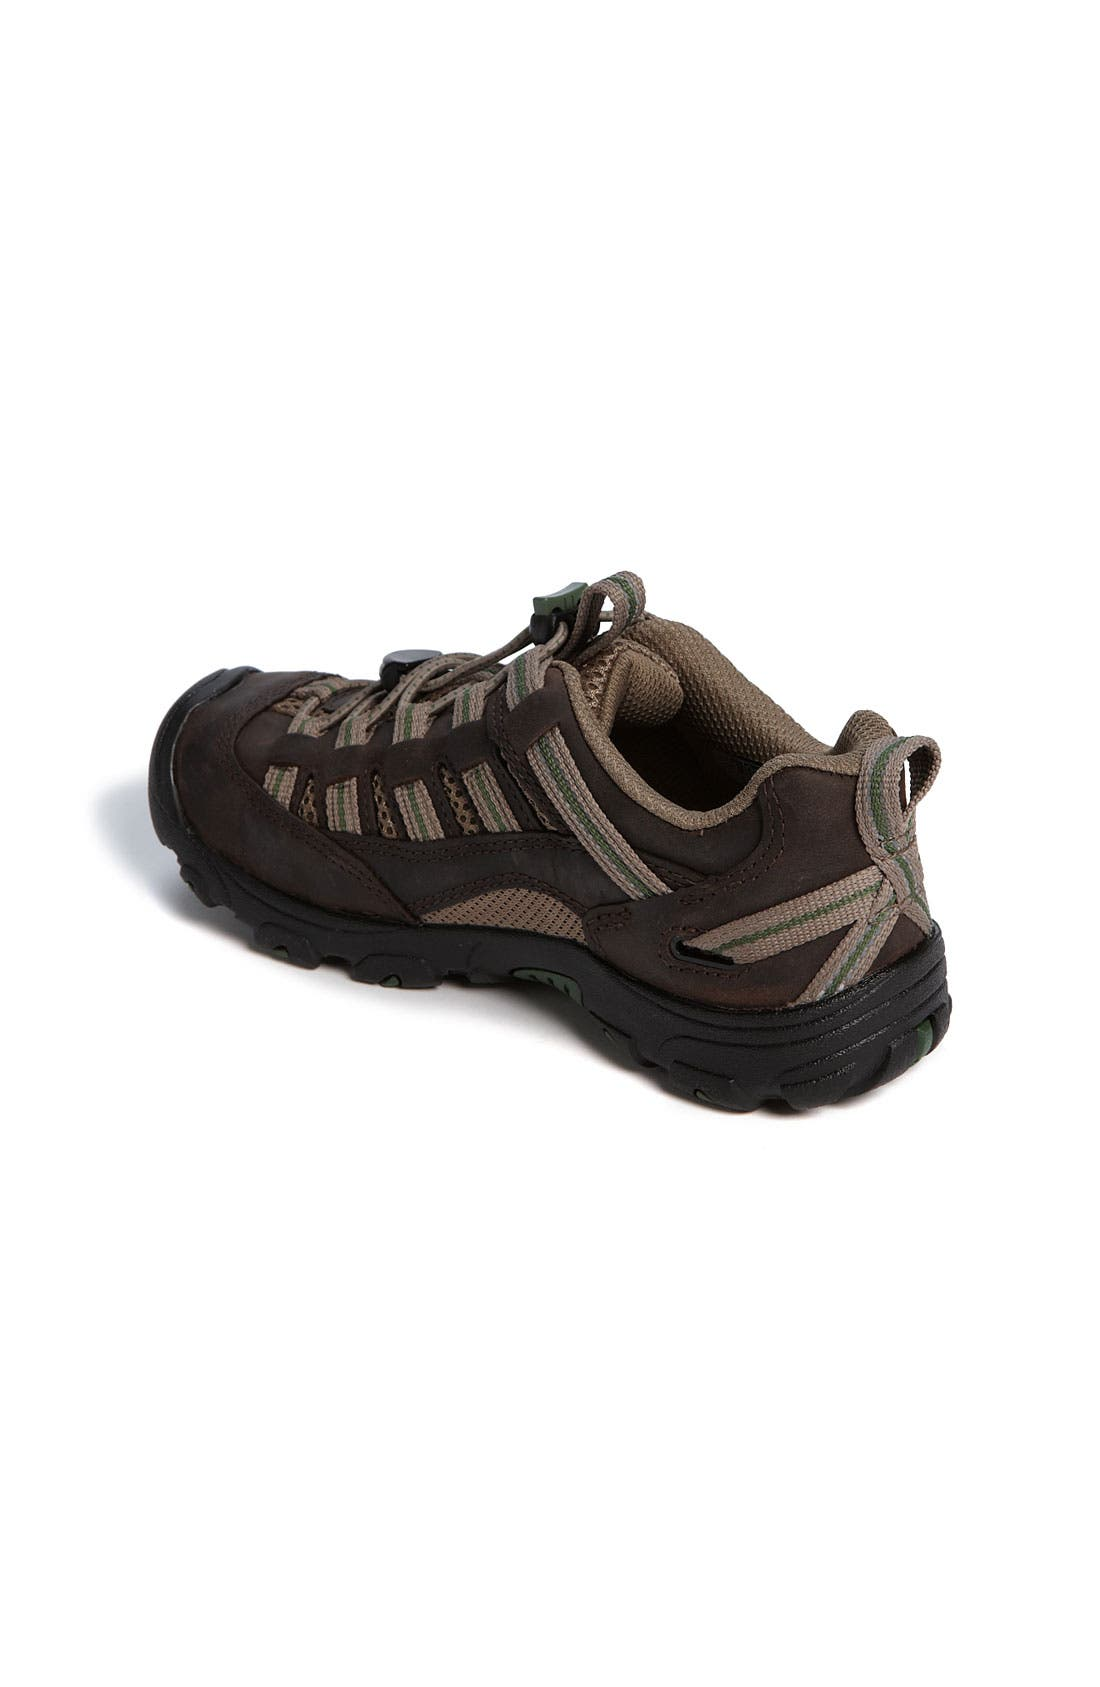 Alternate Image 2  - Keen 'Alamosa' Waterproof Sneaker (Toddler, Little Kid & Big Kid)